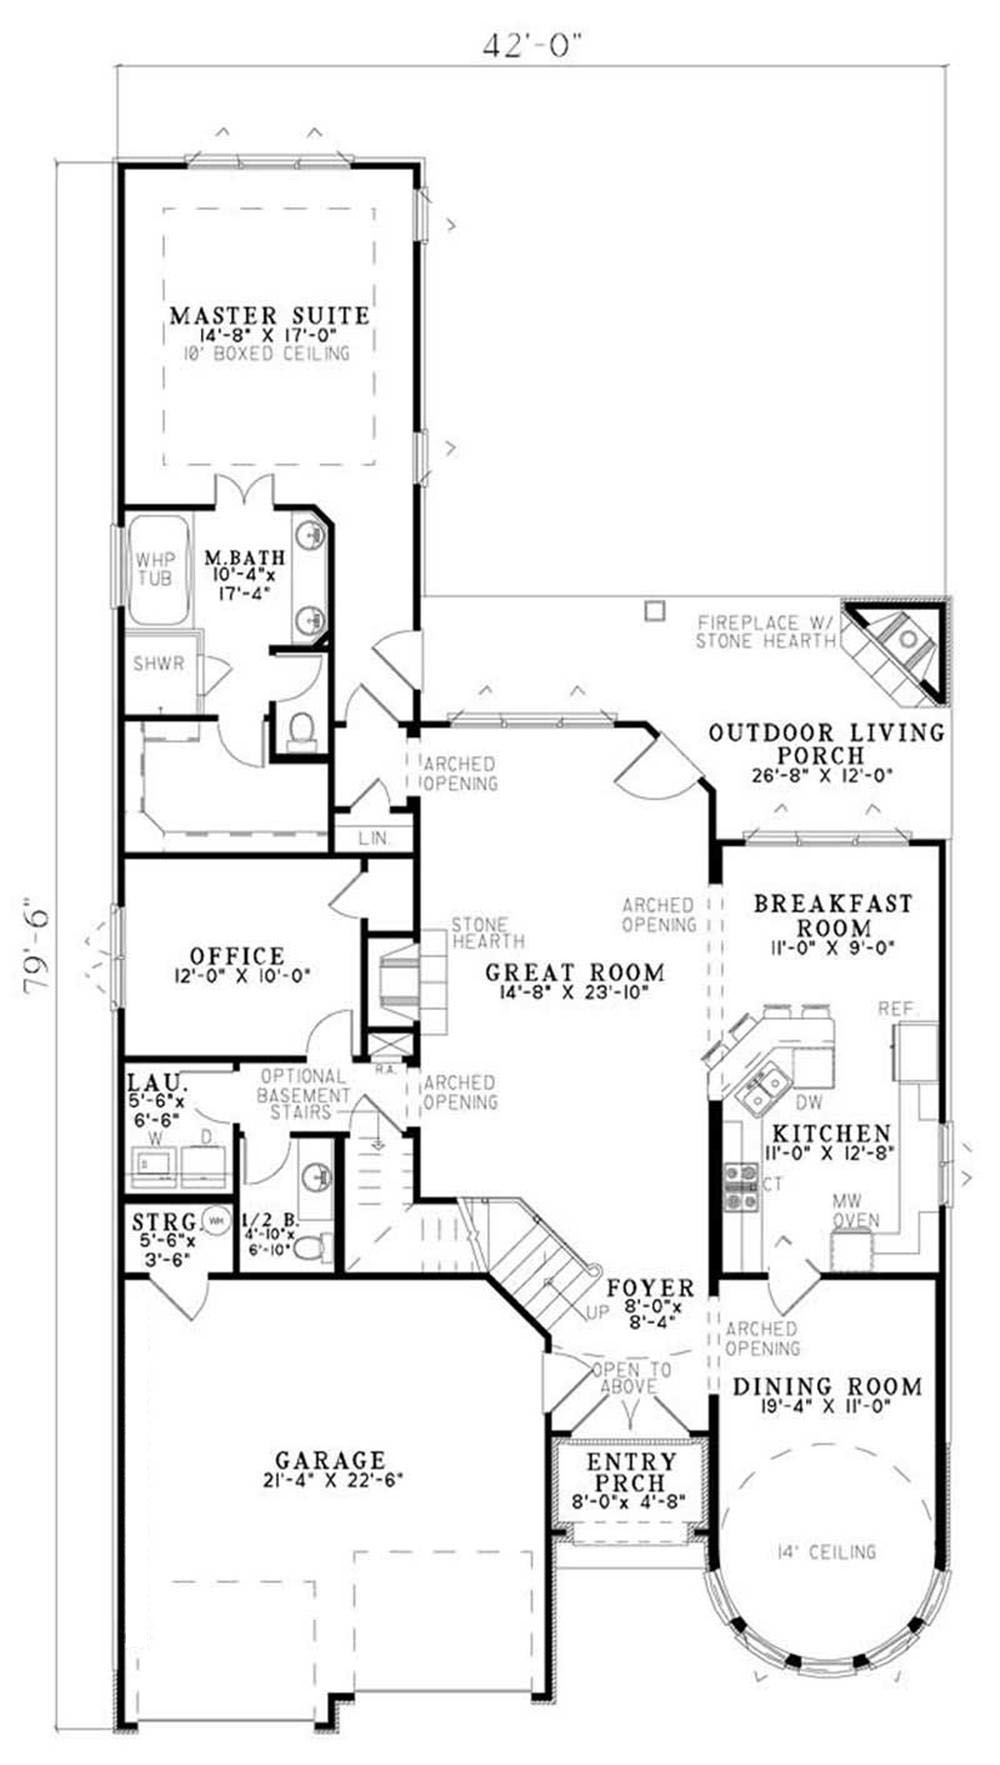 House Plan NDG-1184 First Floor